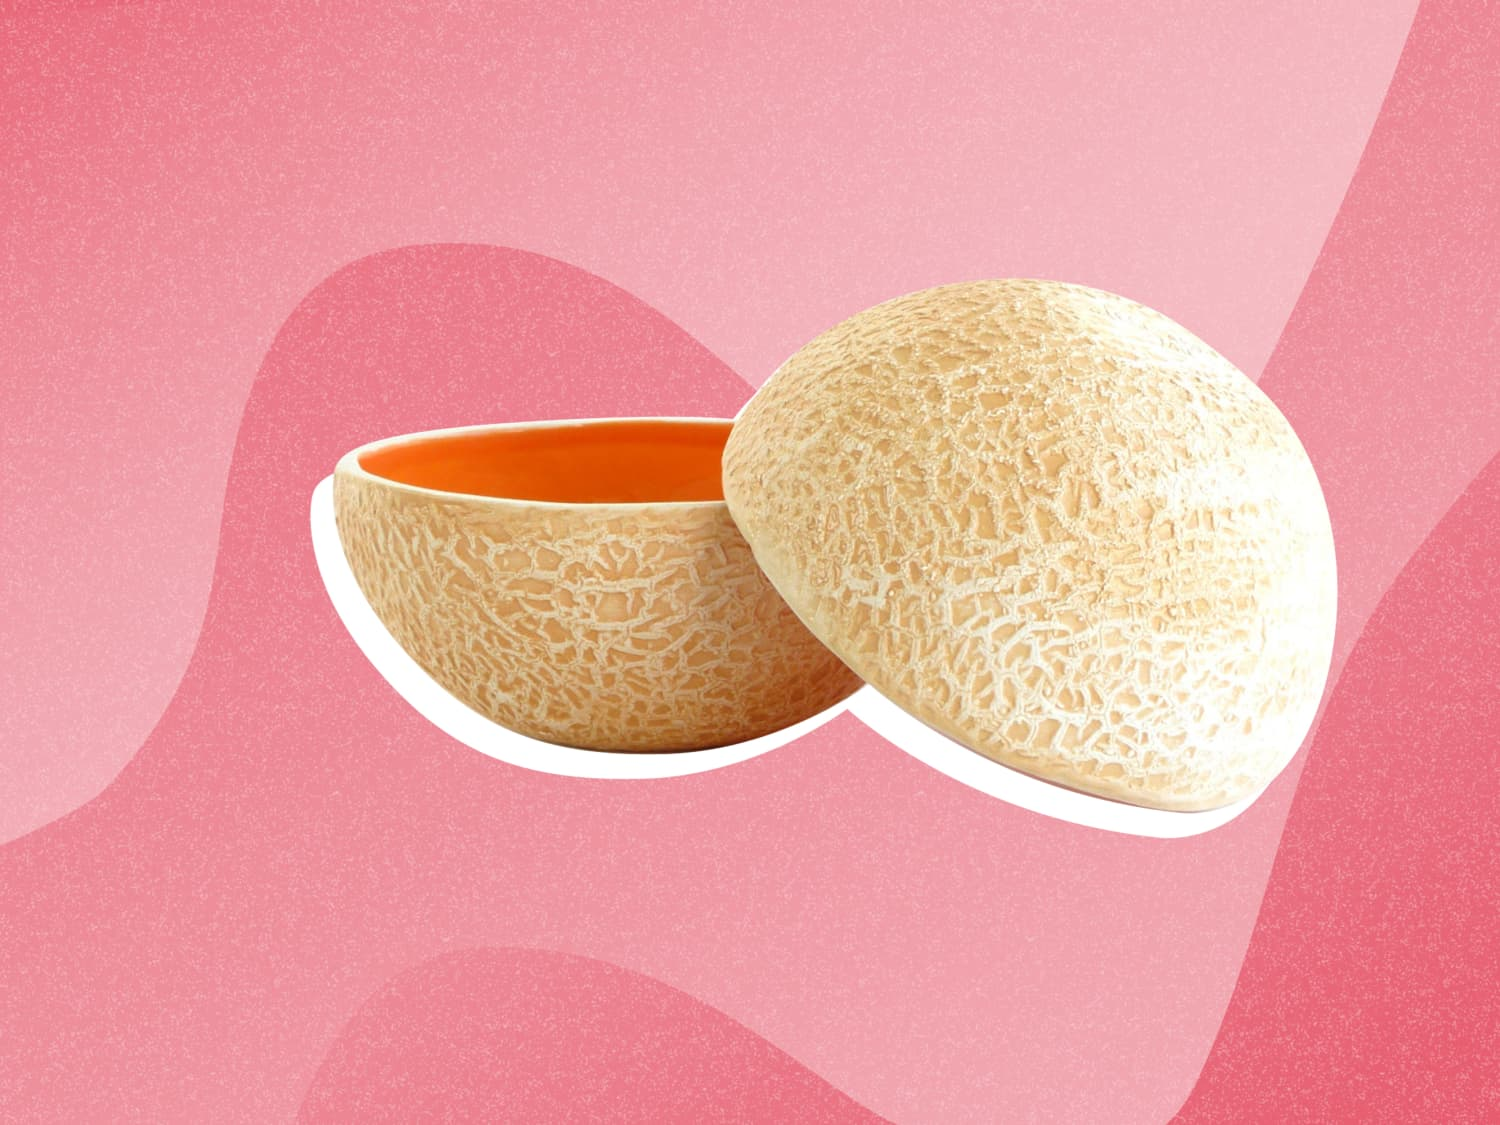 Cantaloupe Bowl / Pour into bowl or glass and garnish.